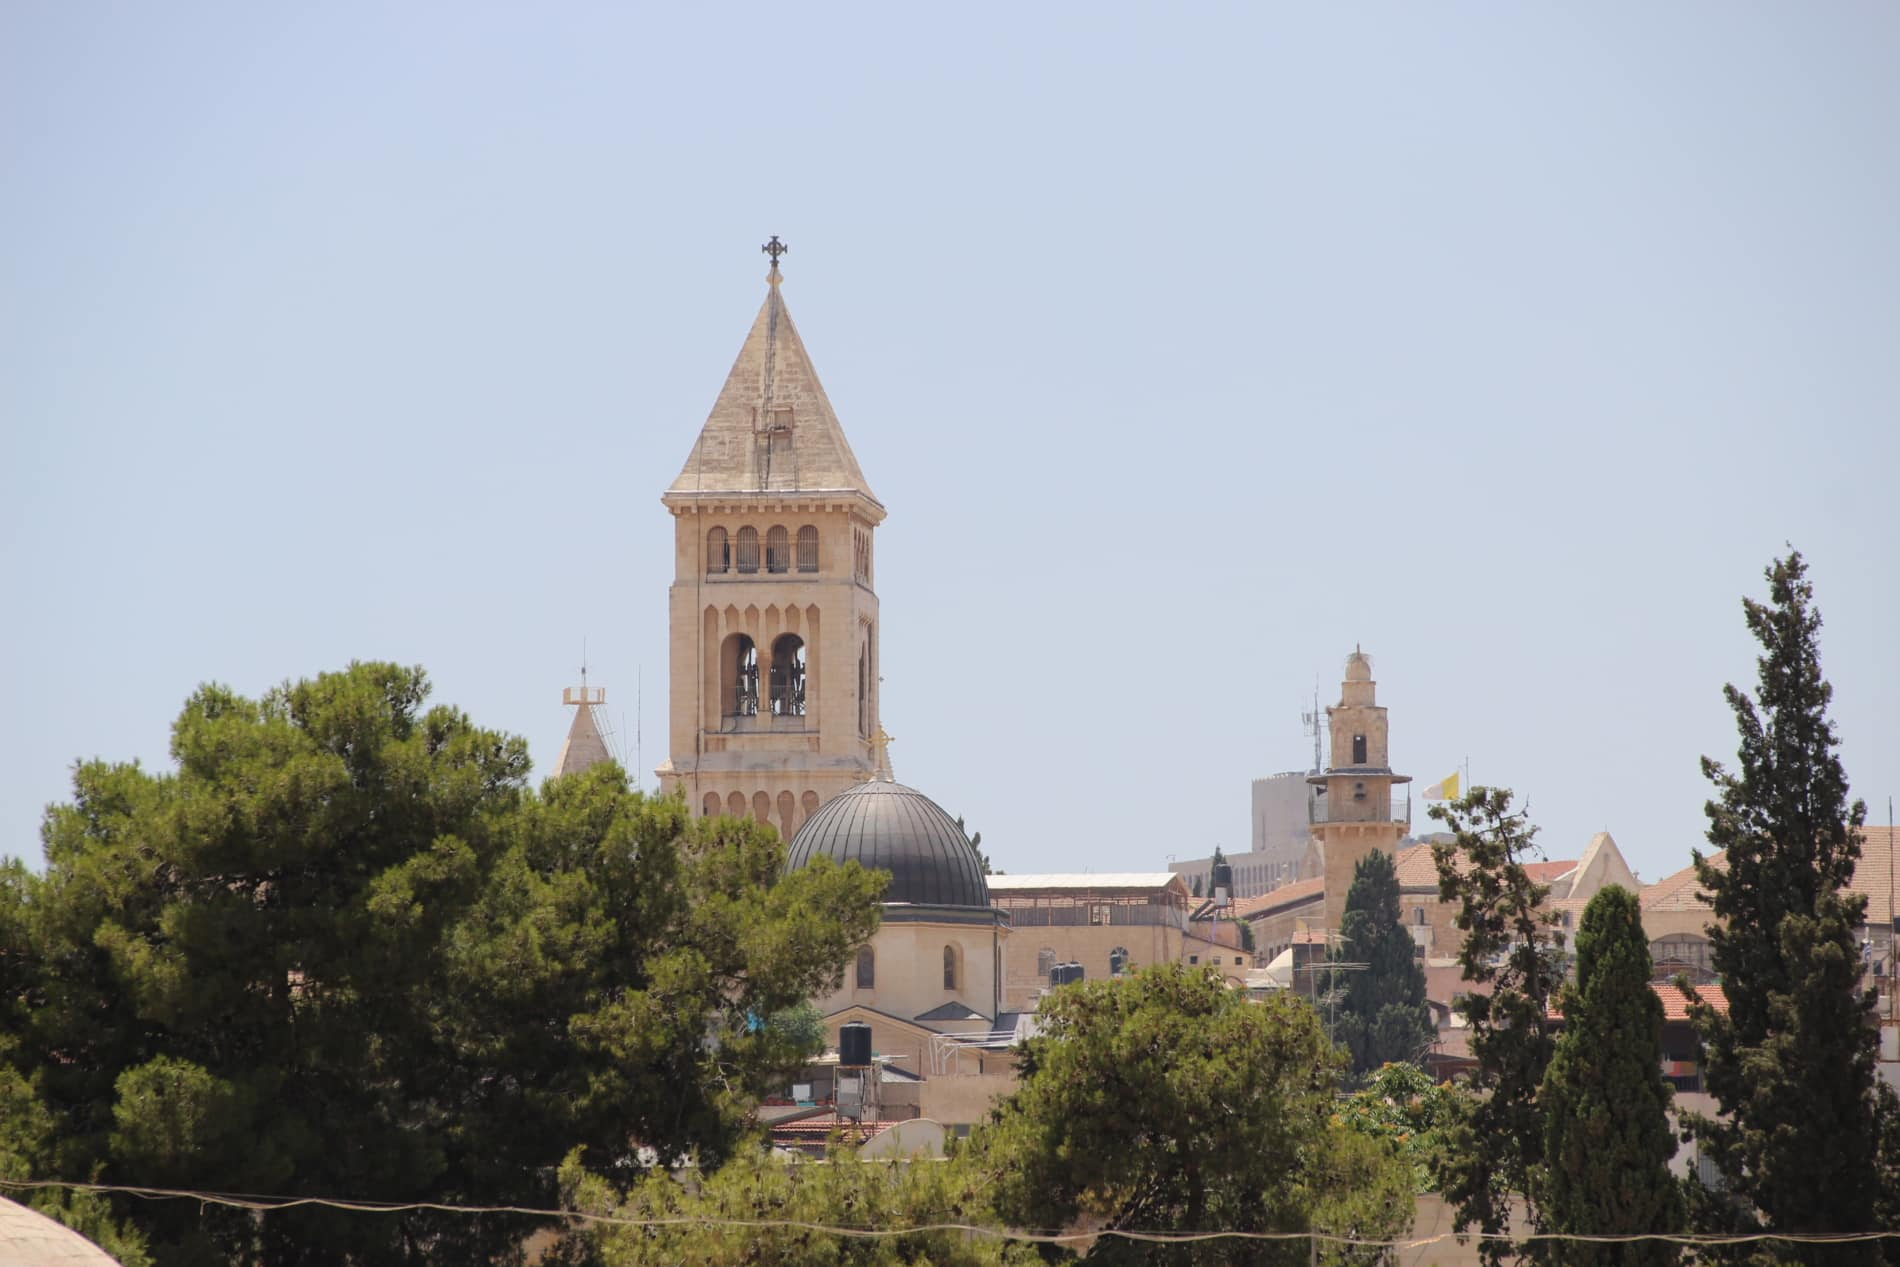 The Lutheran Church of the Redeemer in Jerusalem